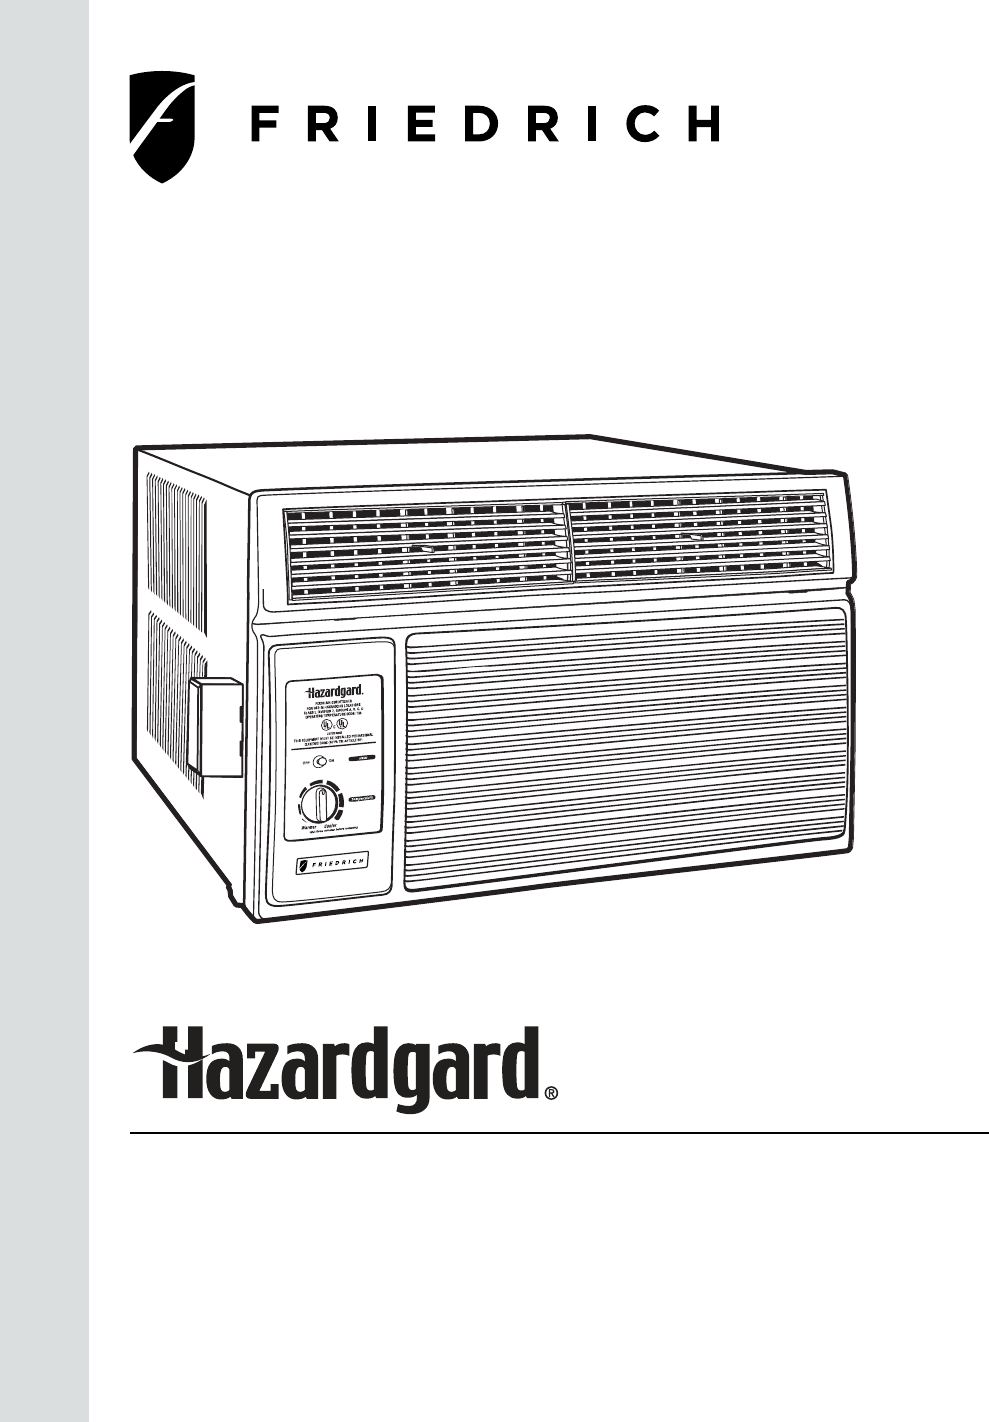 Friedrich Air Conditioner R-410A User Guide